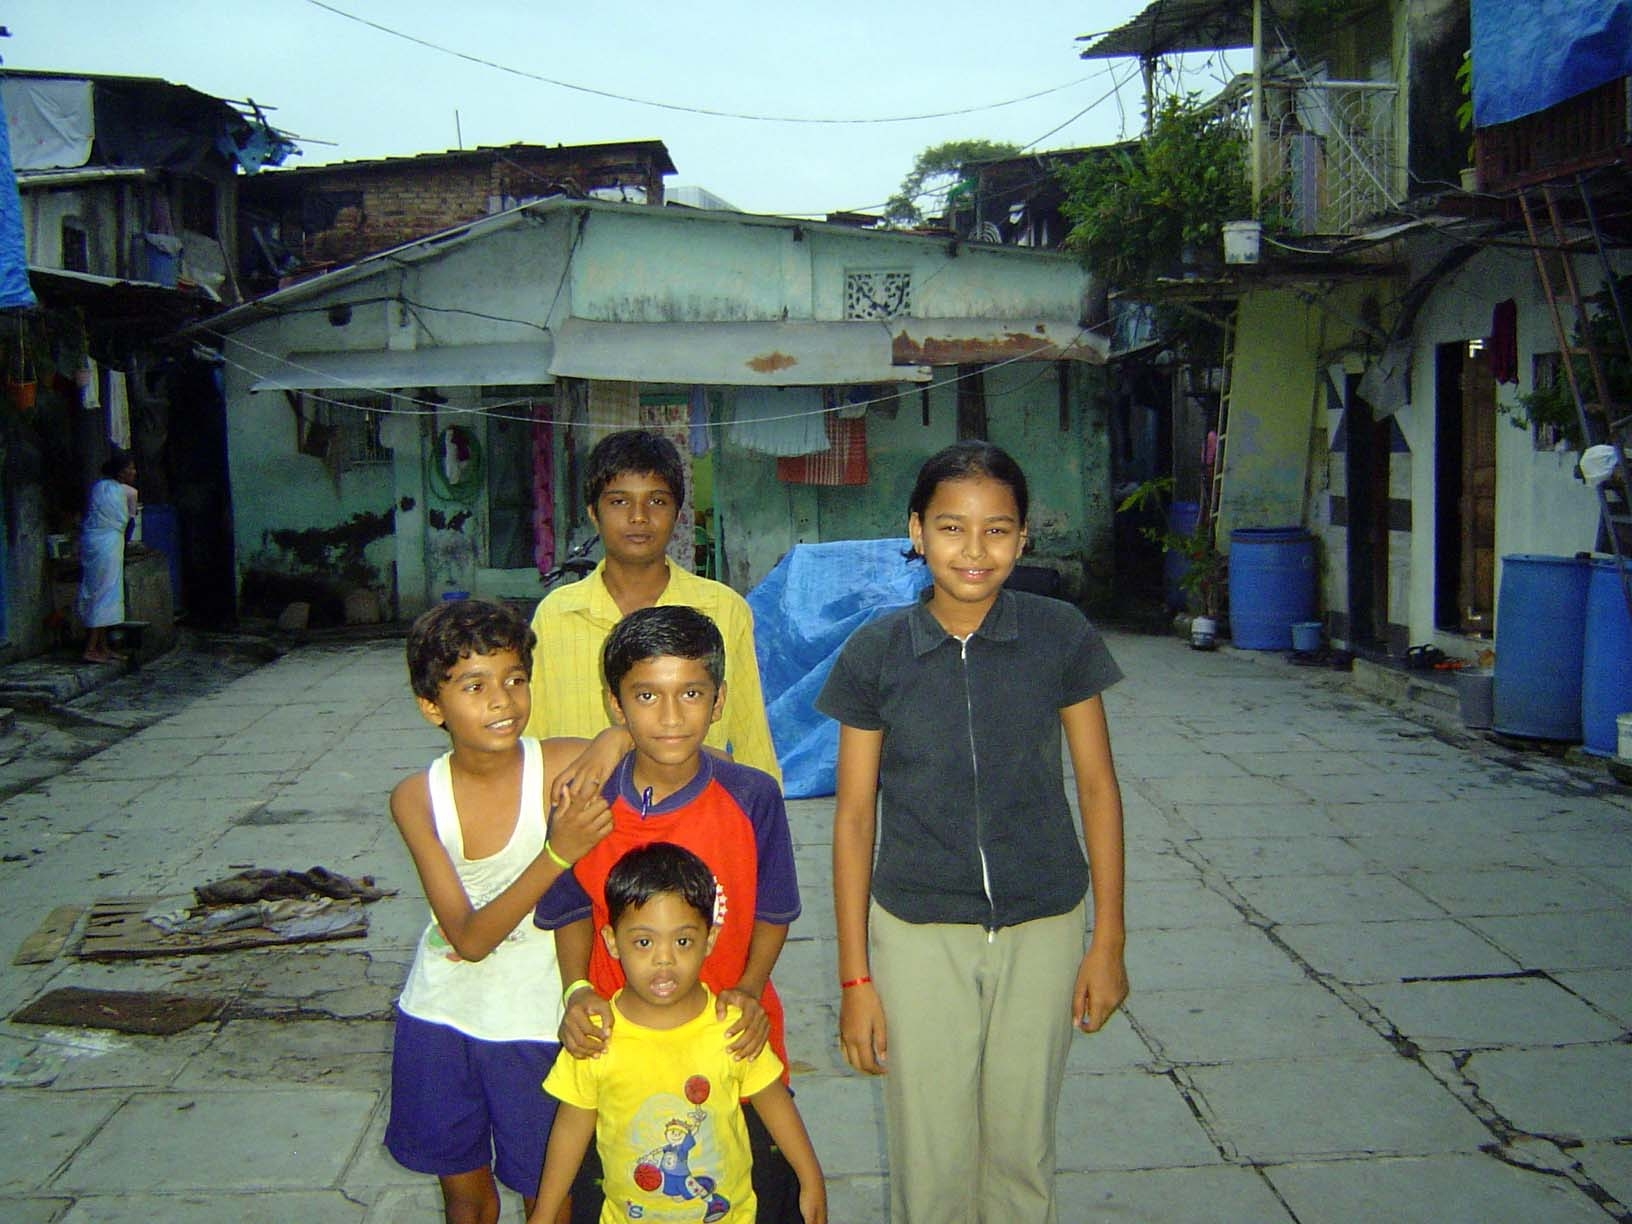 Peninsular India: Mumbai: An Andheri Slum